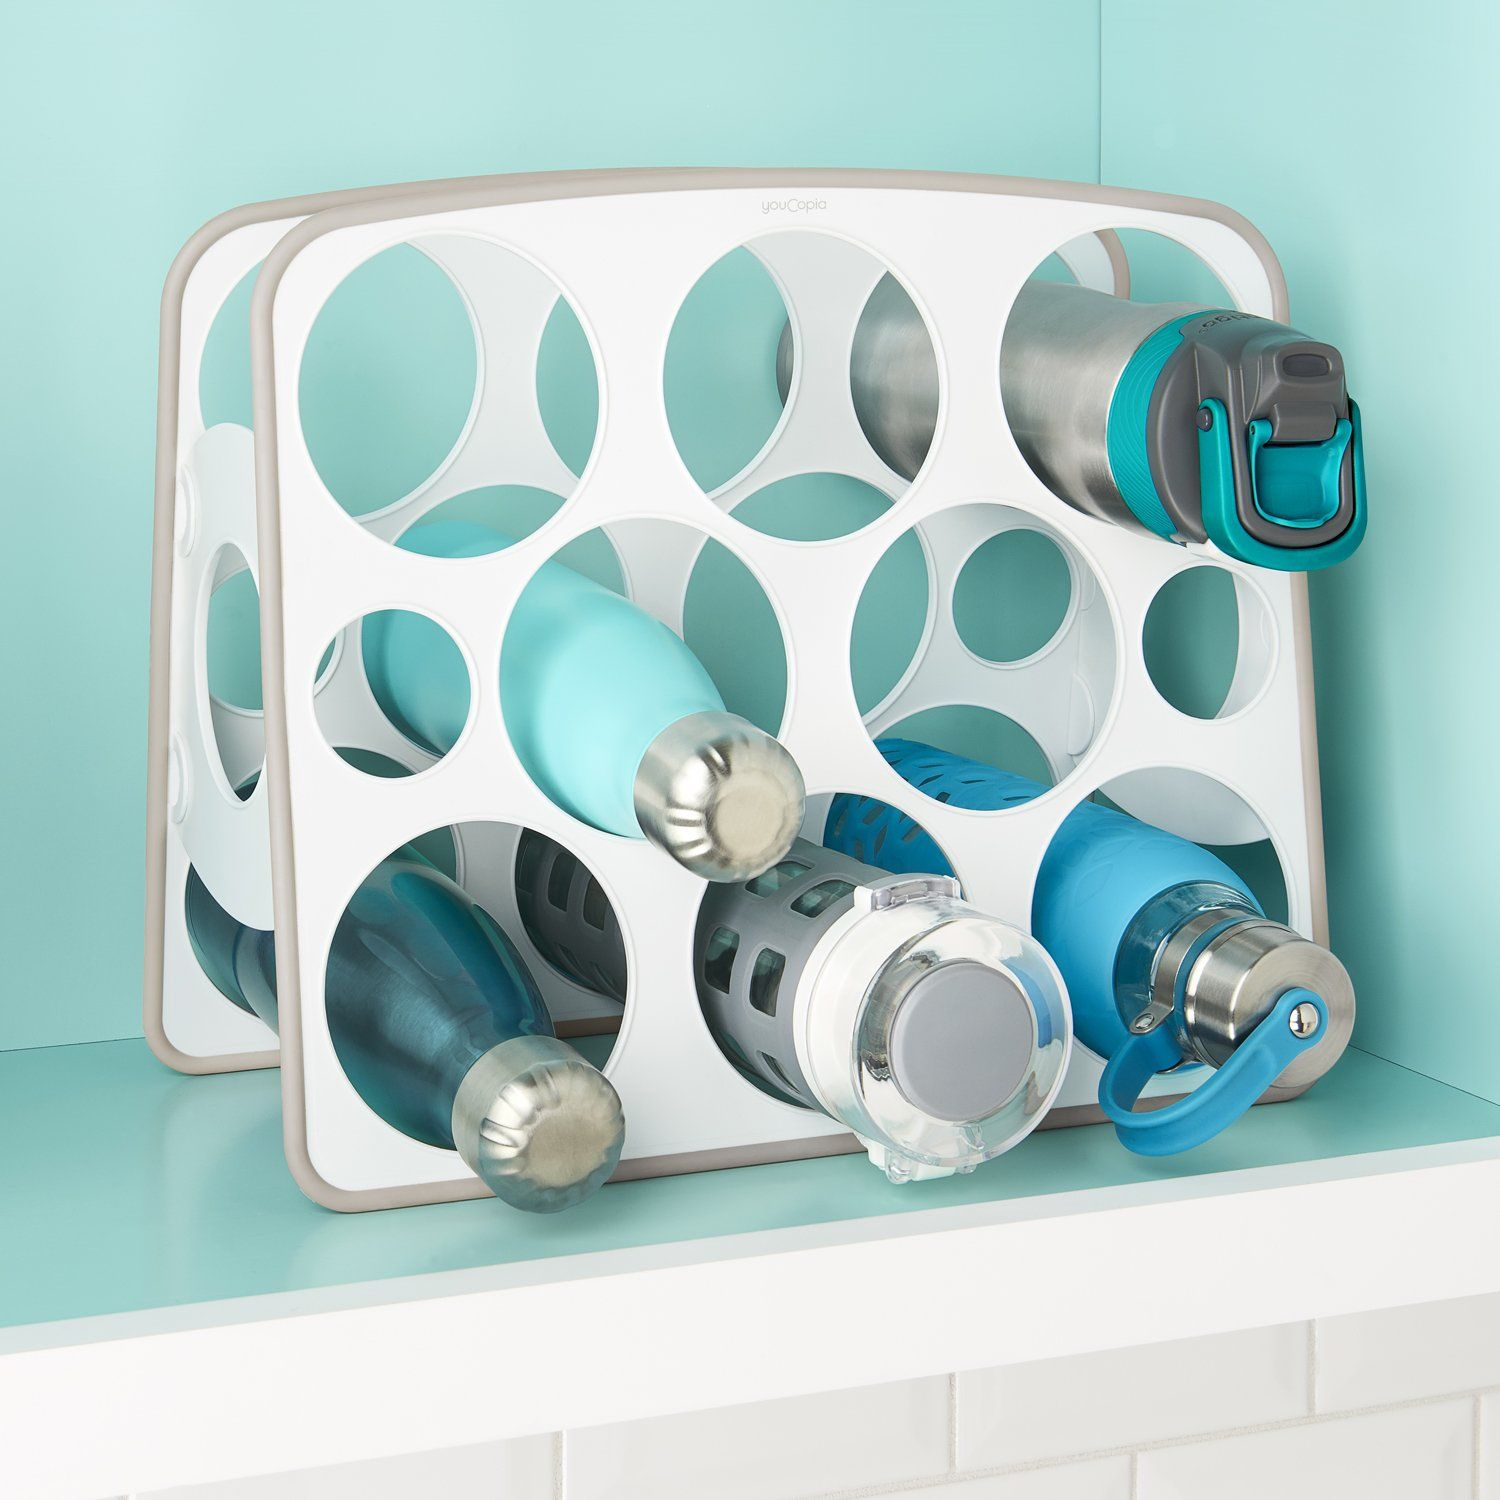 BottleStand Travel Mug and Water Bottle Organizer Water